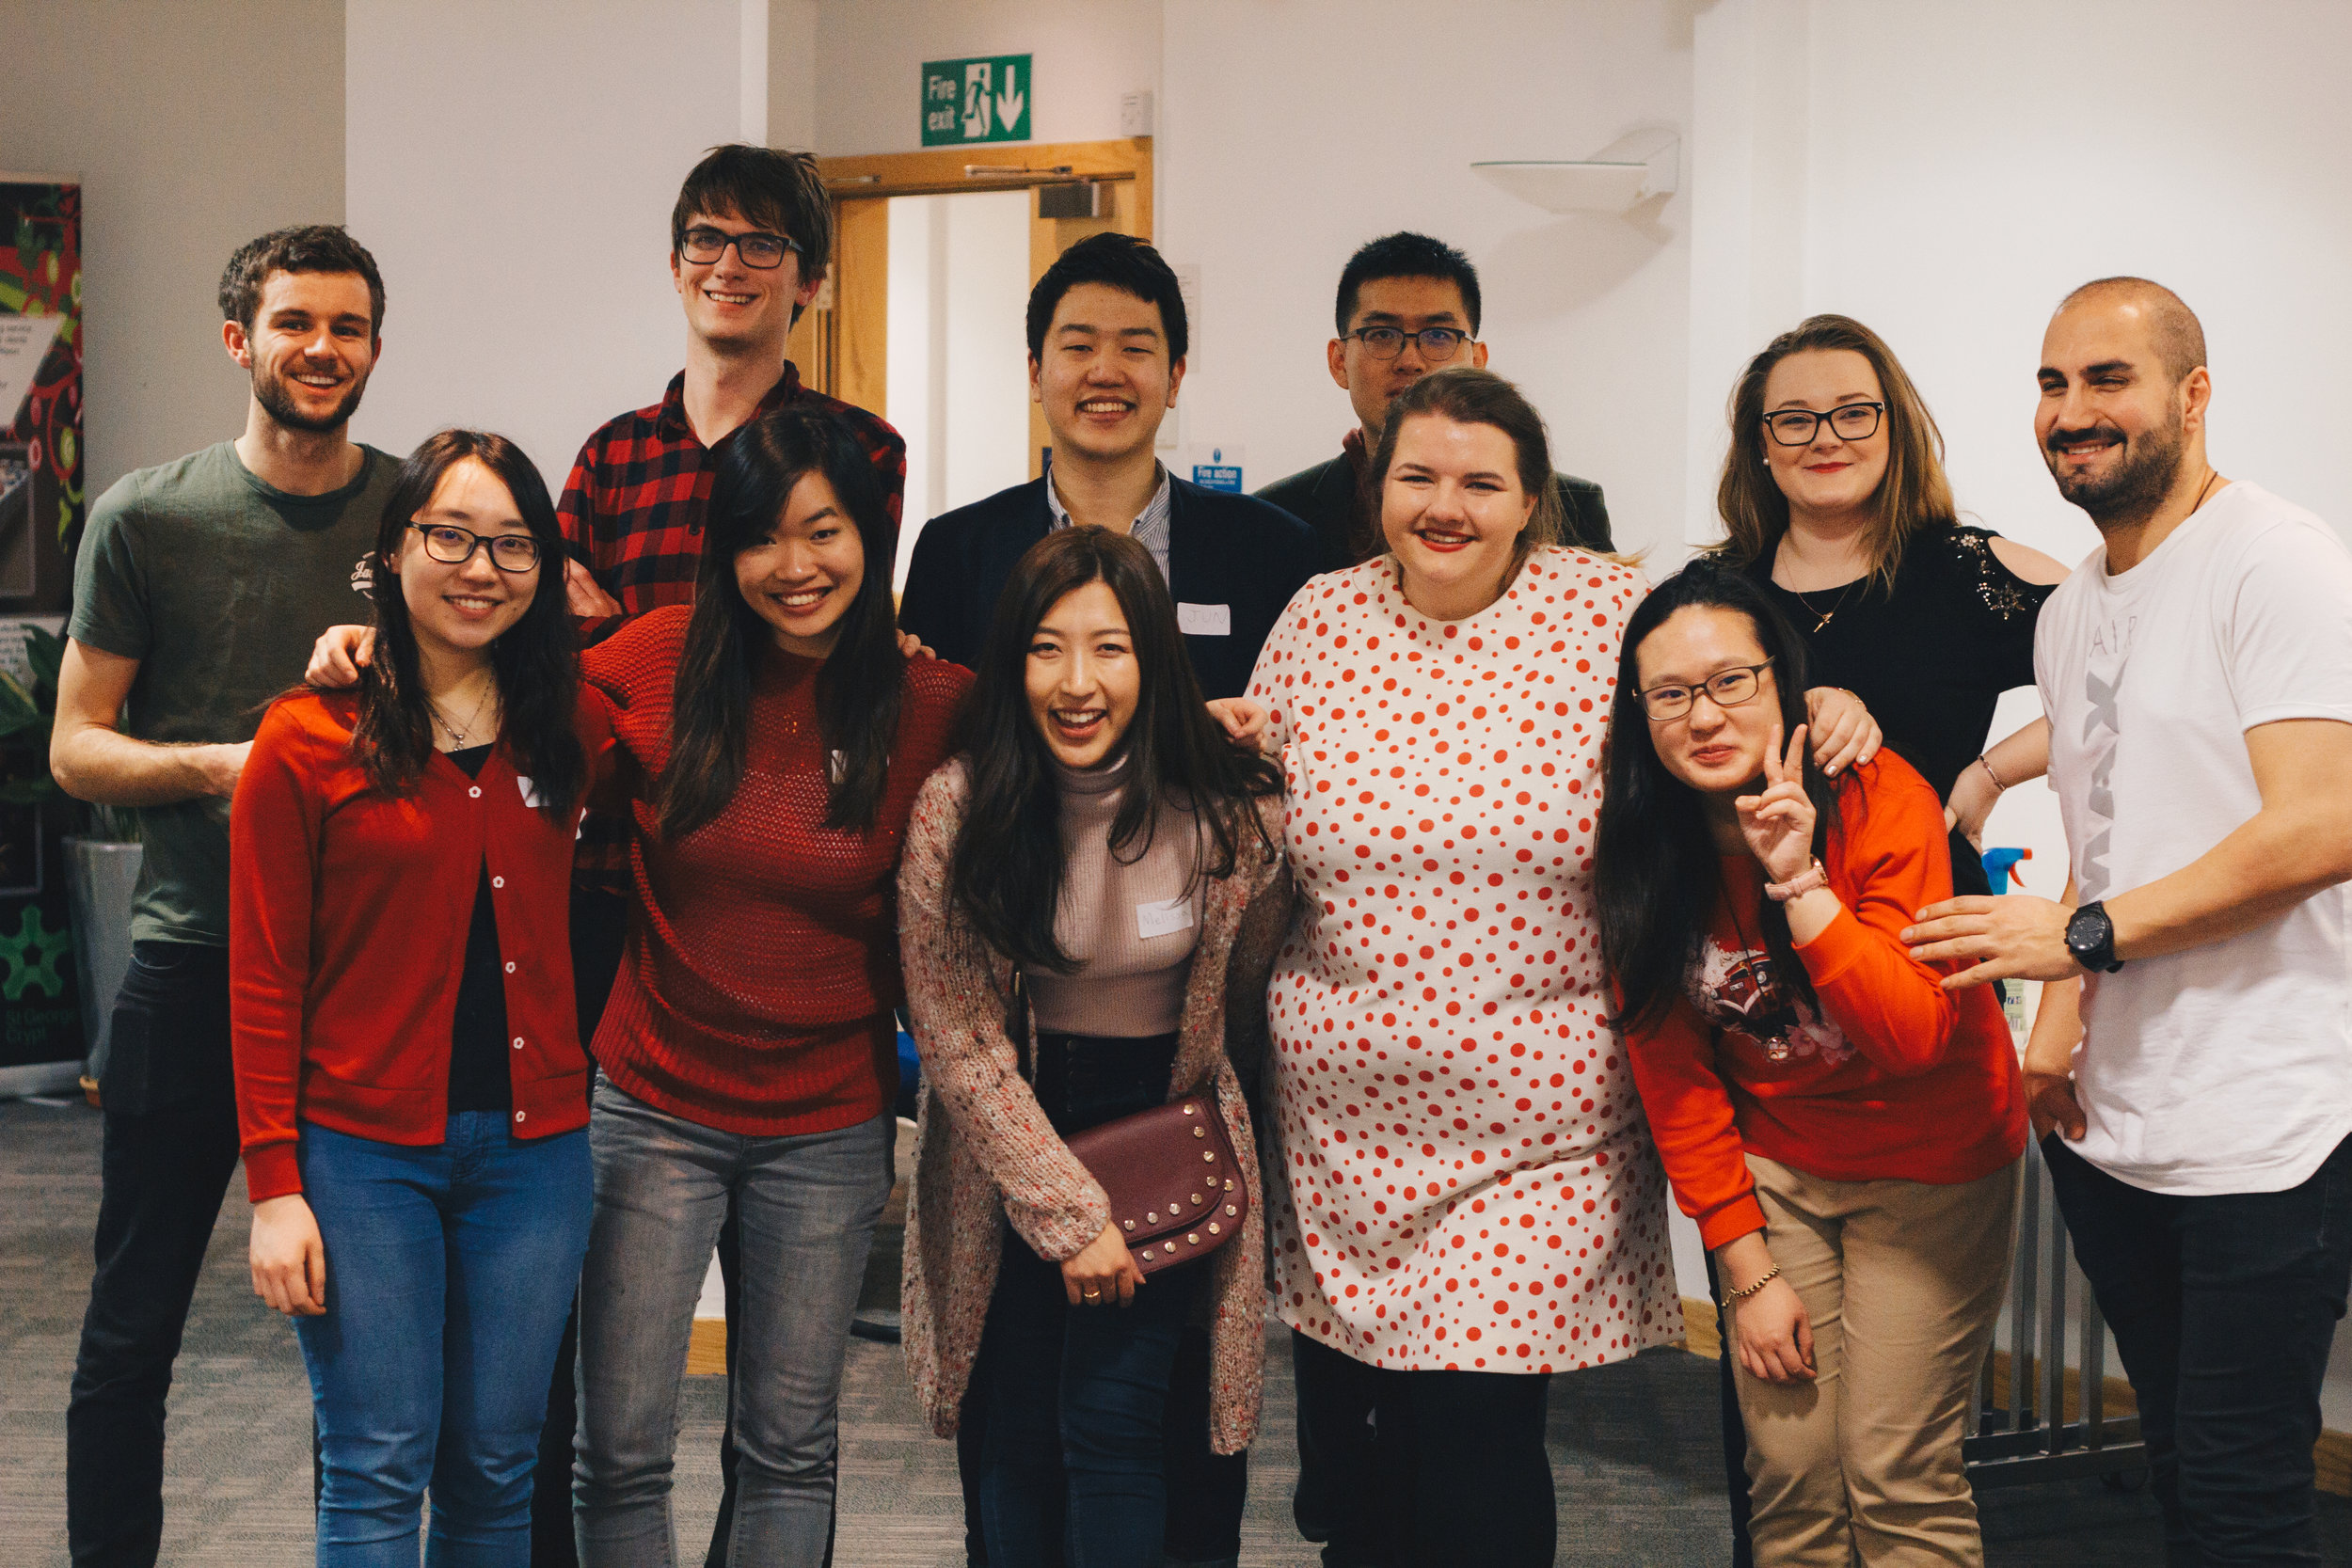 International Student Network - Thursdays 7.30pm at St Gs Centre